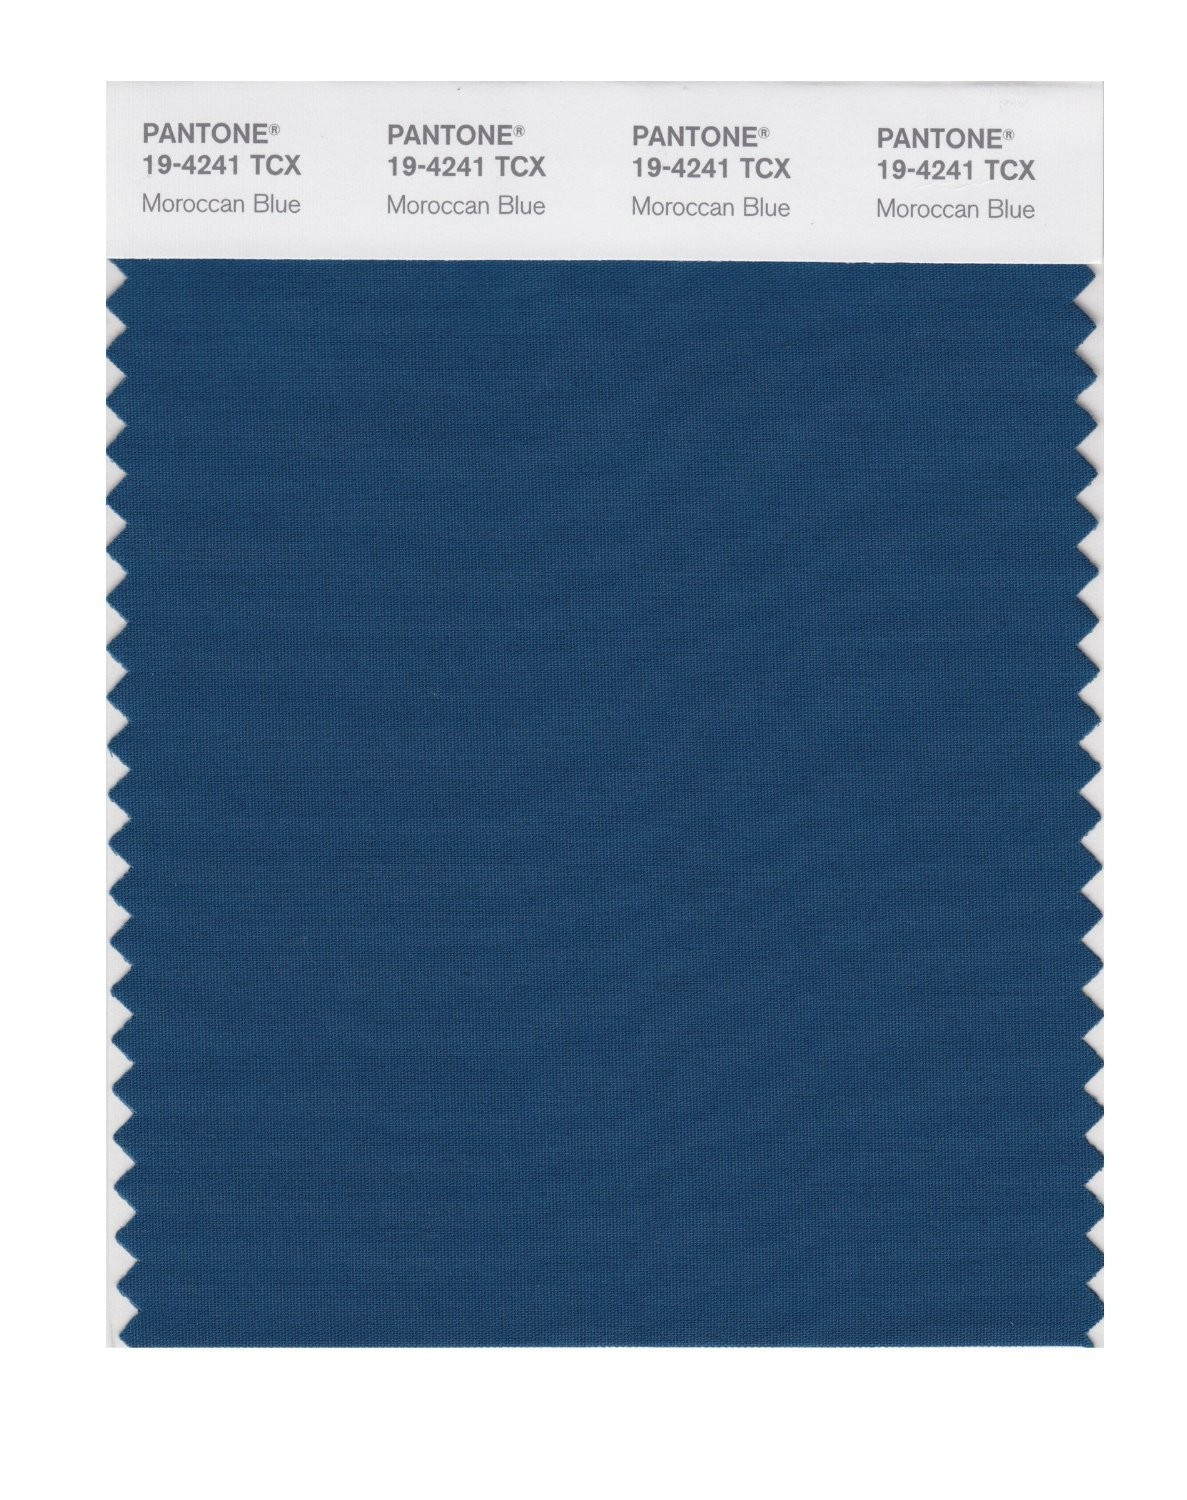 Pantone 19-4241 TCX Swatch Card Morracan Blue